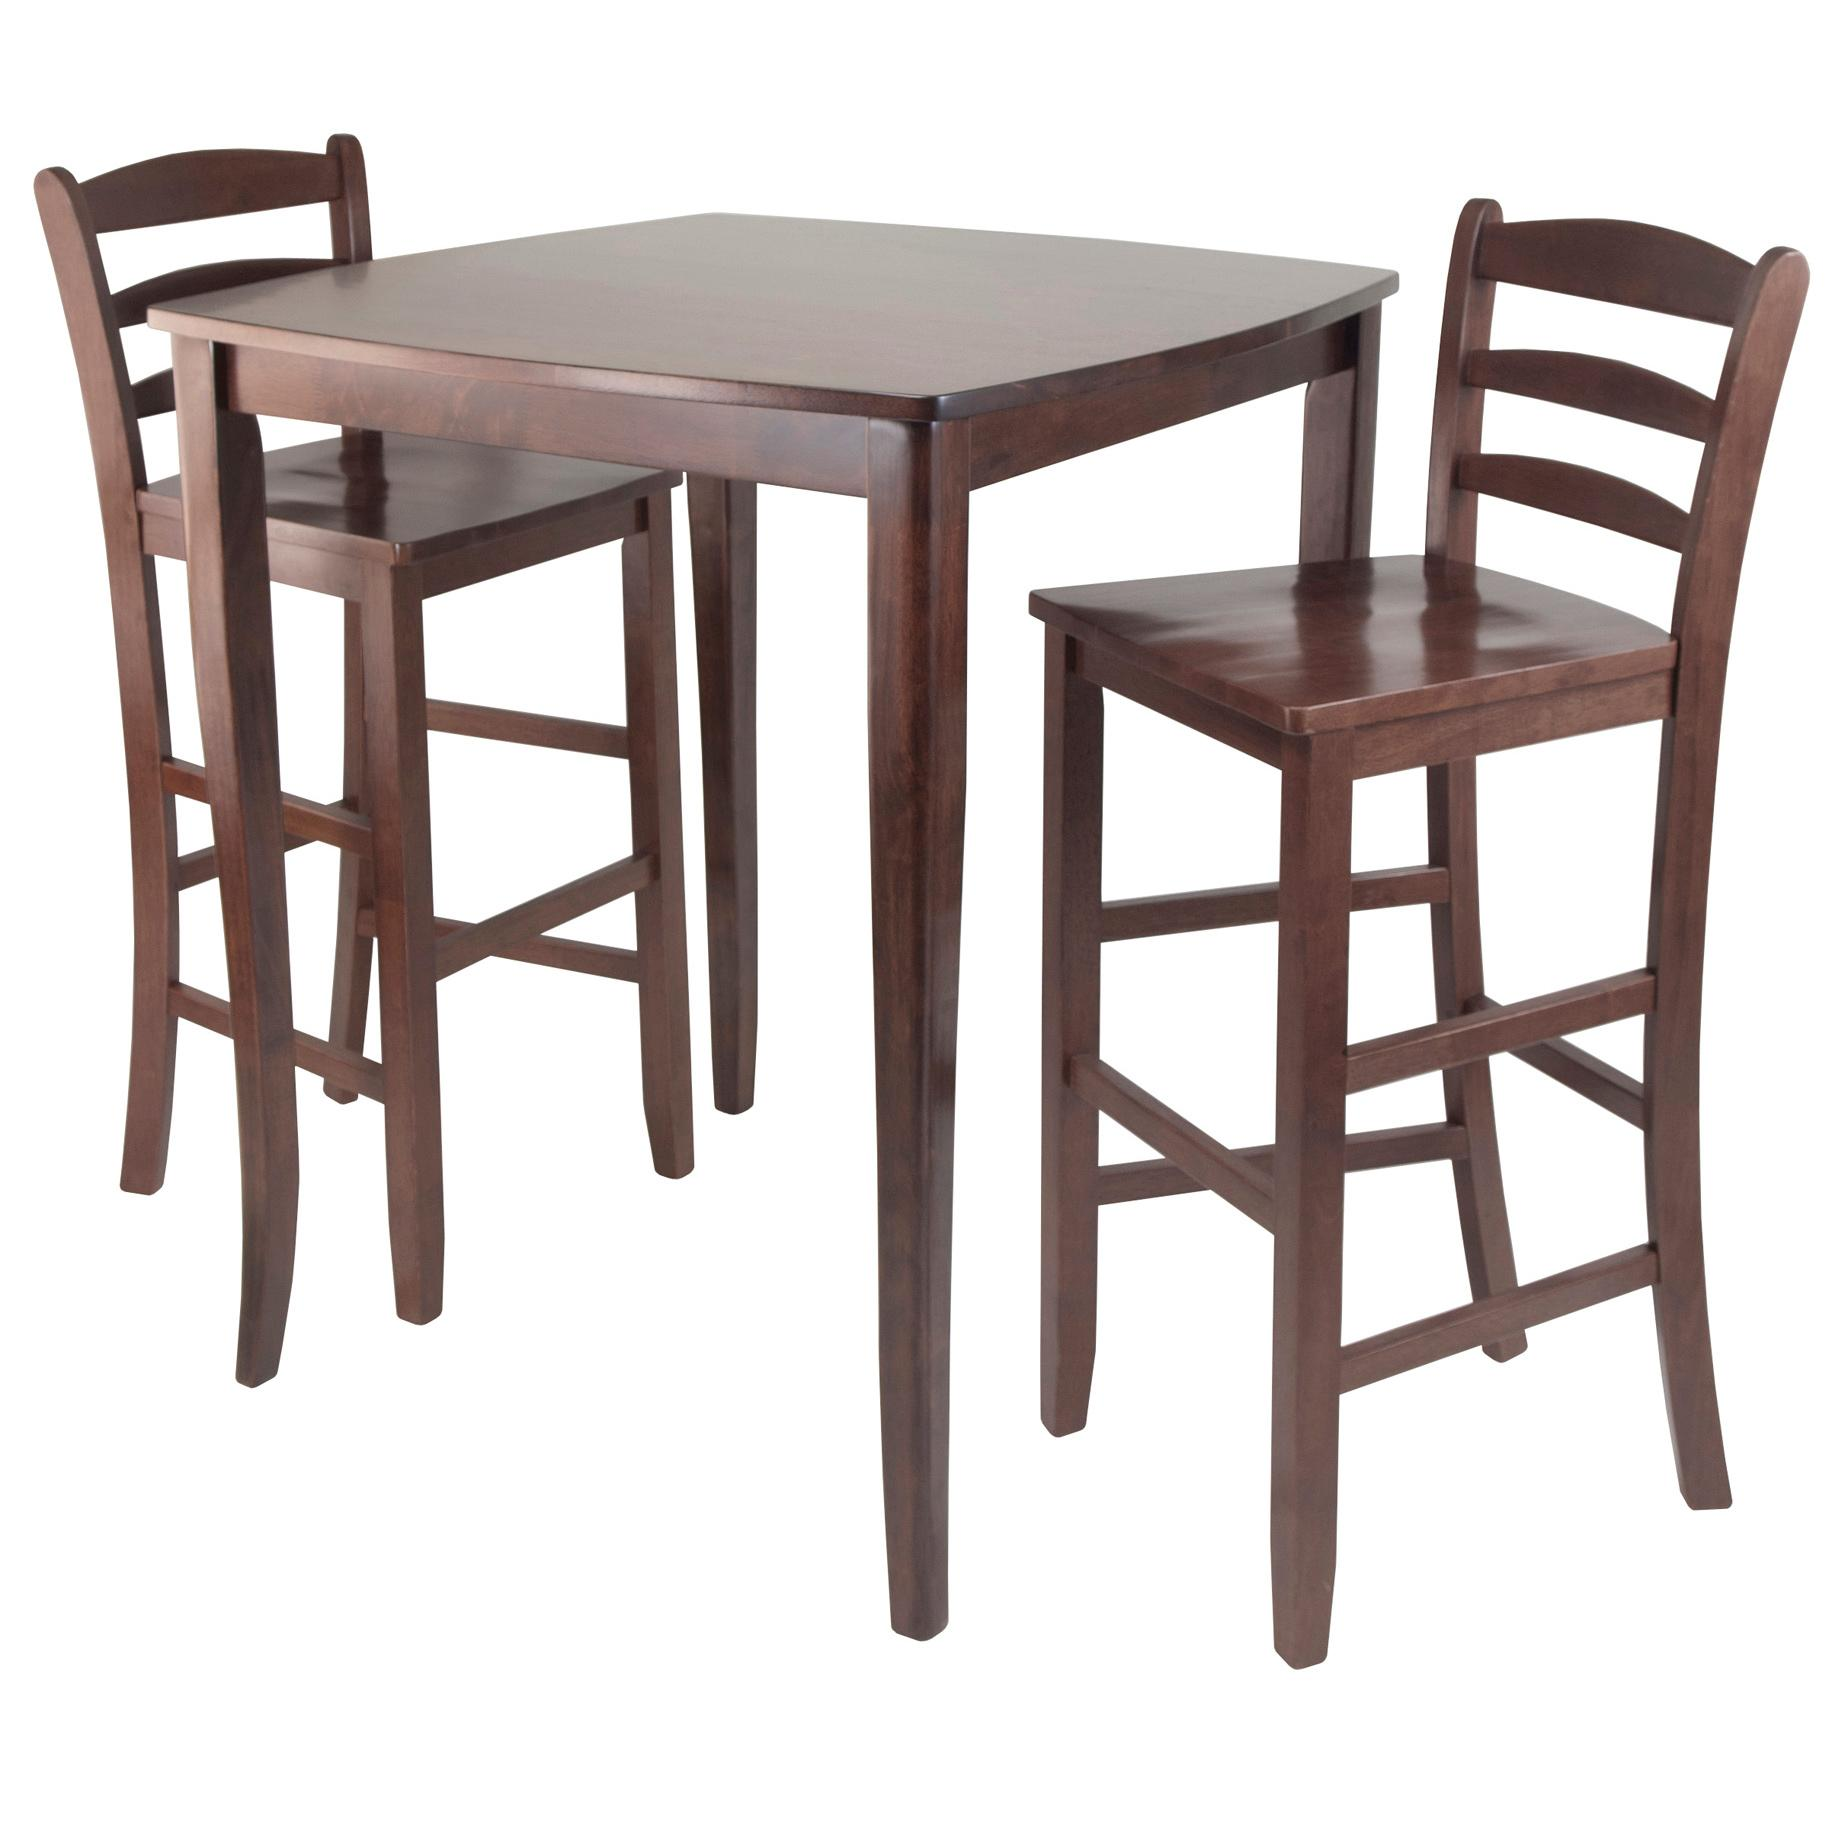 Winsome inglewood high pub dining table with for Breakfast table with stools